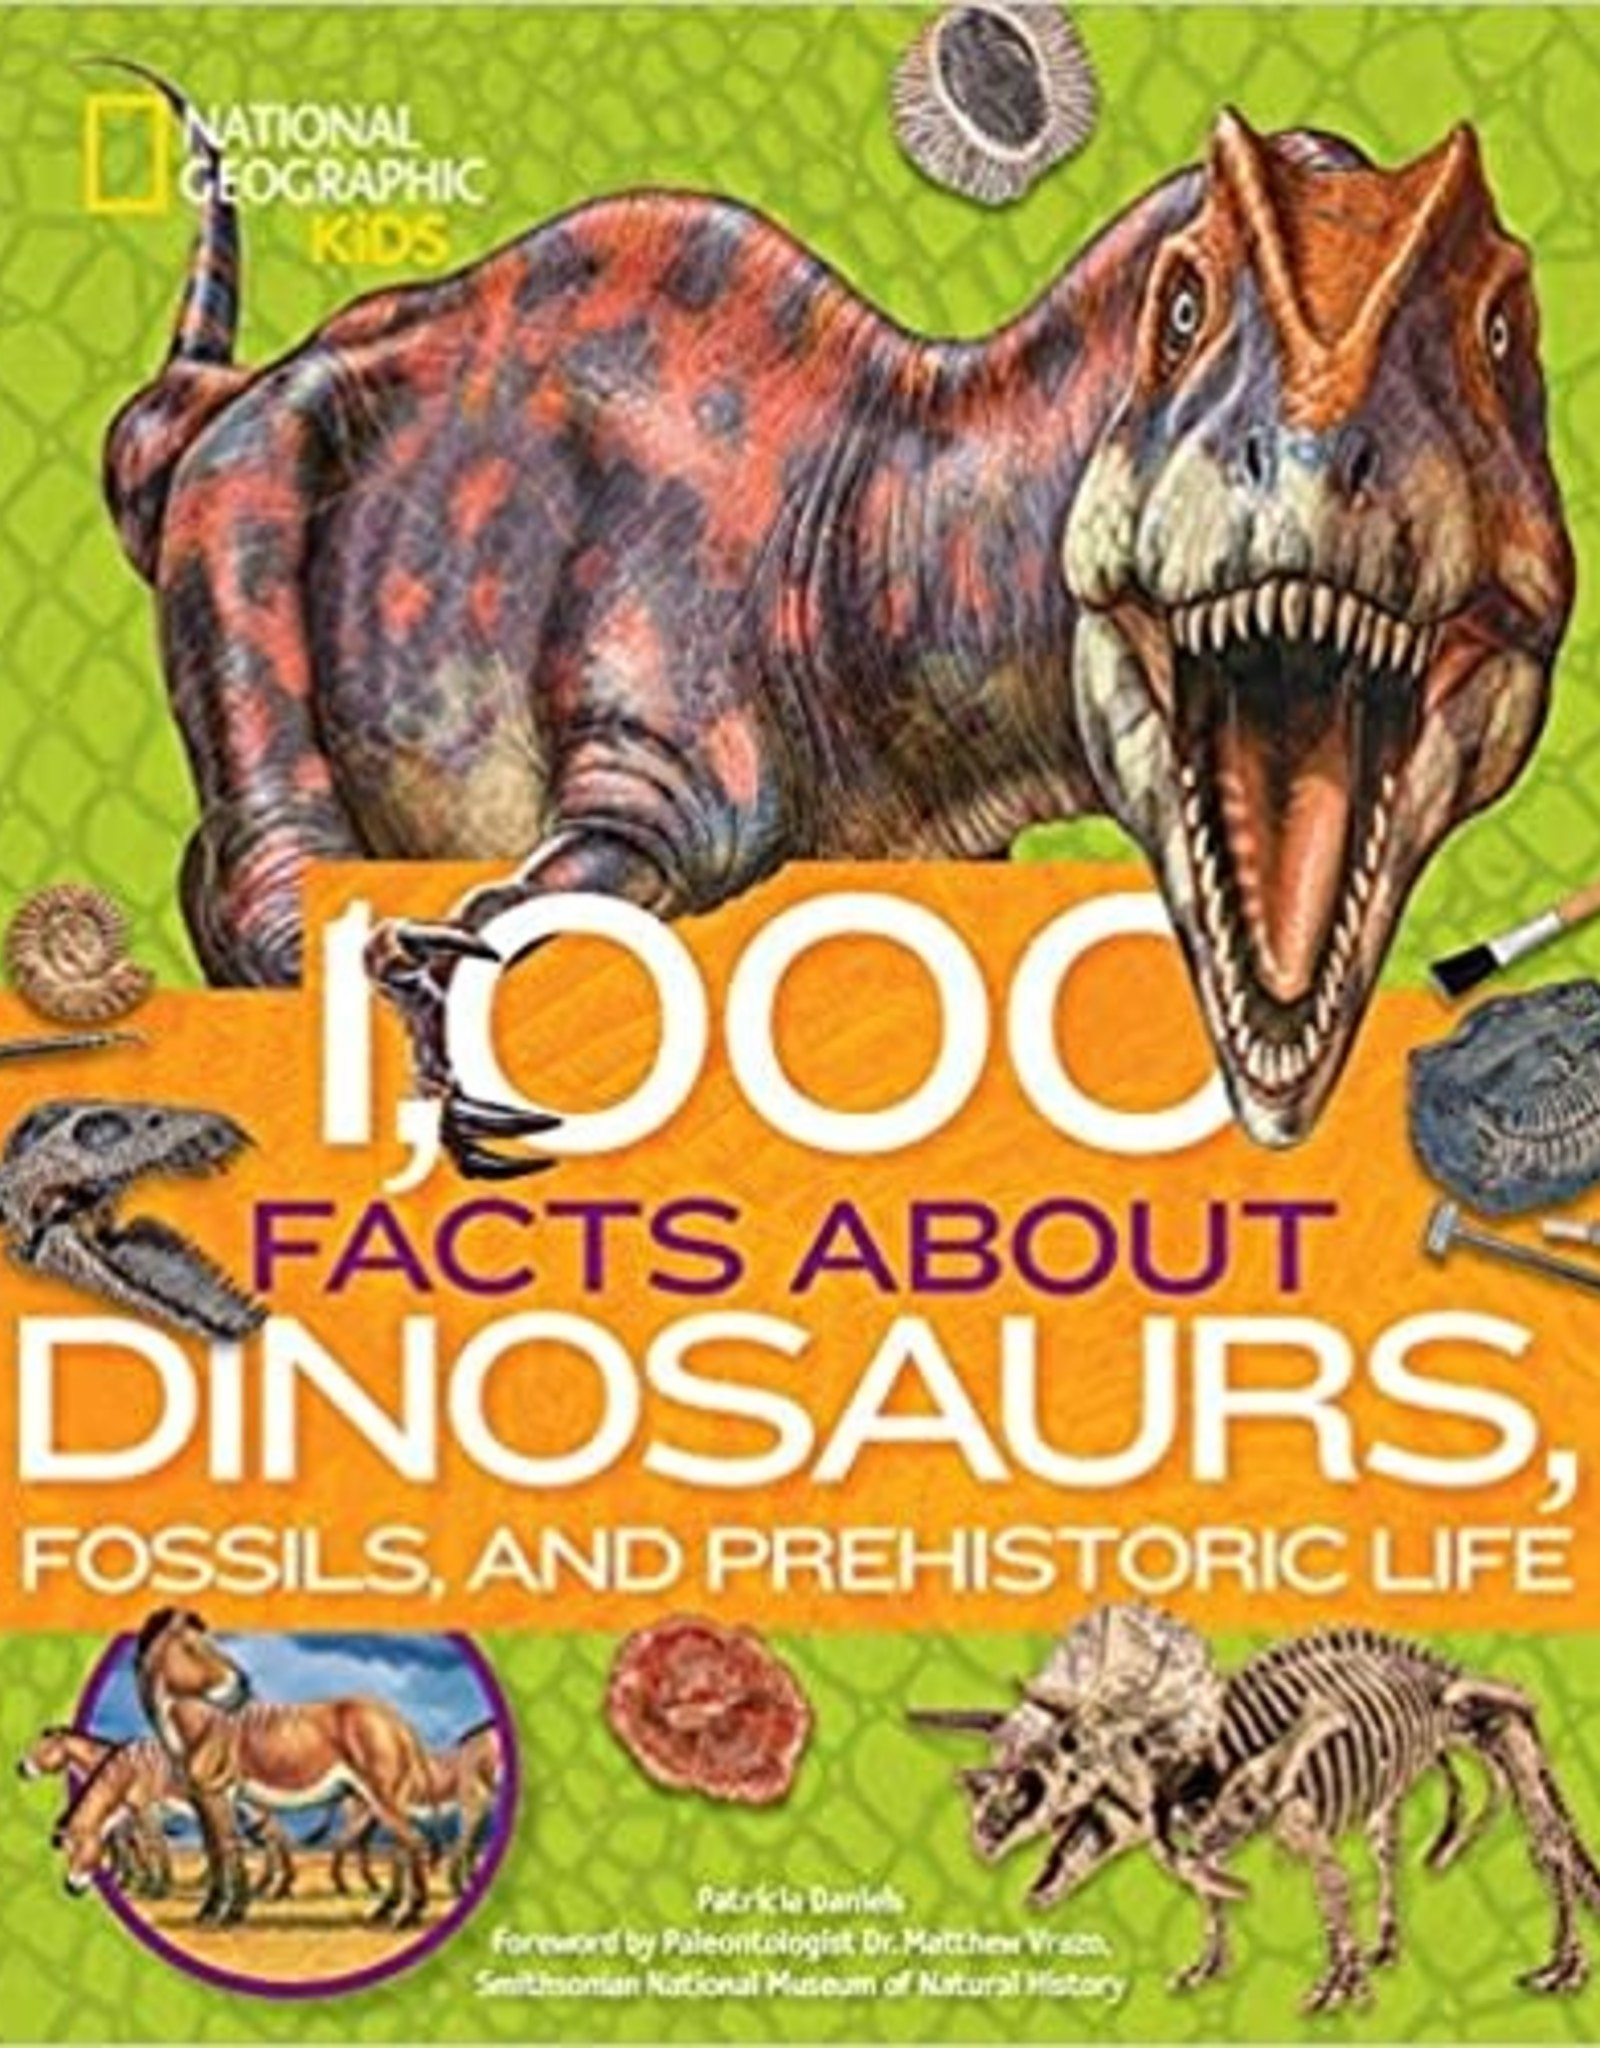 National Geographic Kids (NGK) NGK 1000 Facts About Dinos Fossils Prehistoric Life